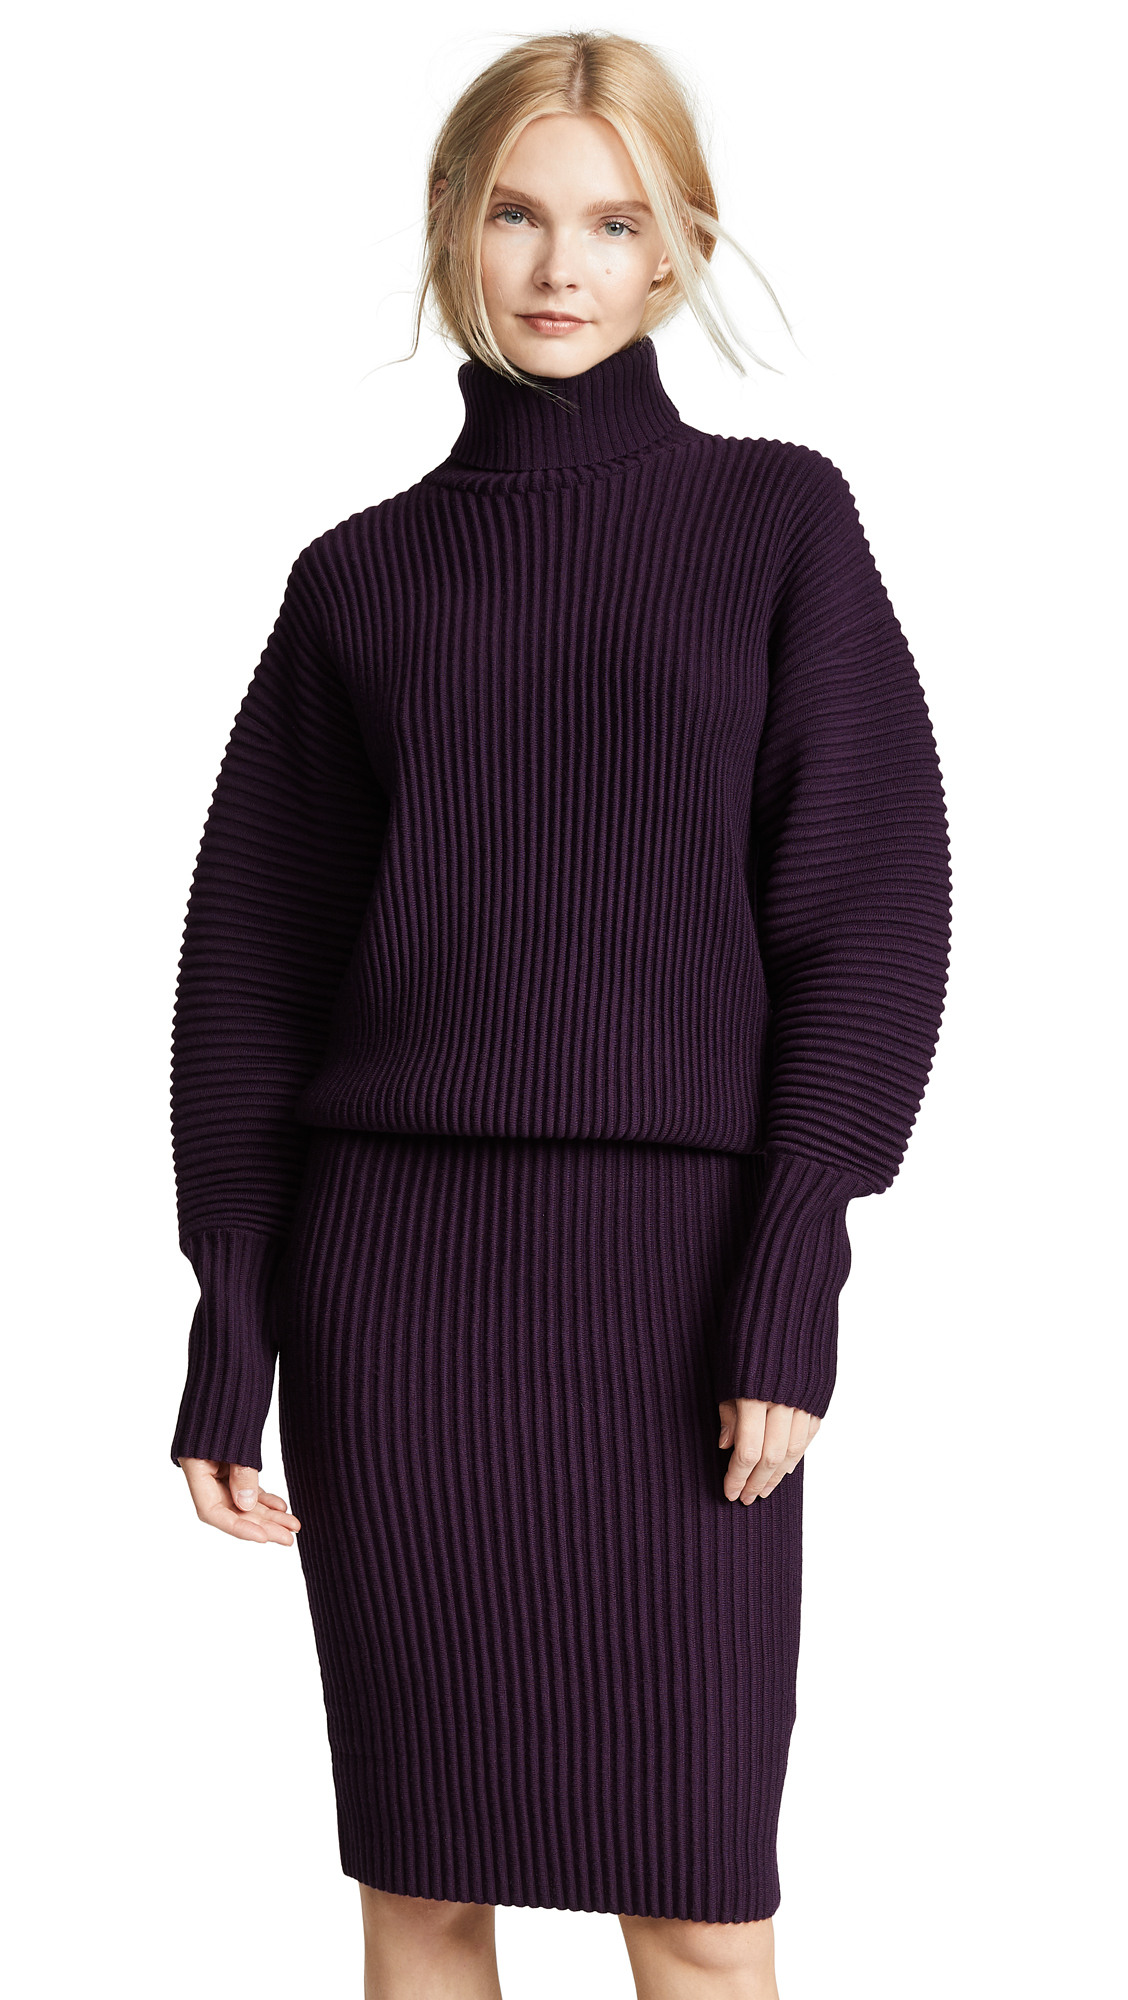 Victoria Victoria Beckham Relaxed Turtleneck Dress